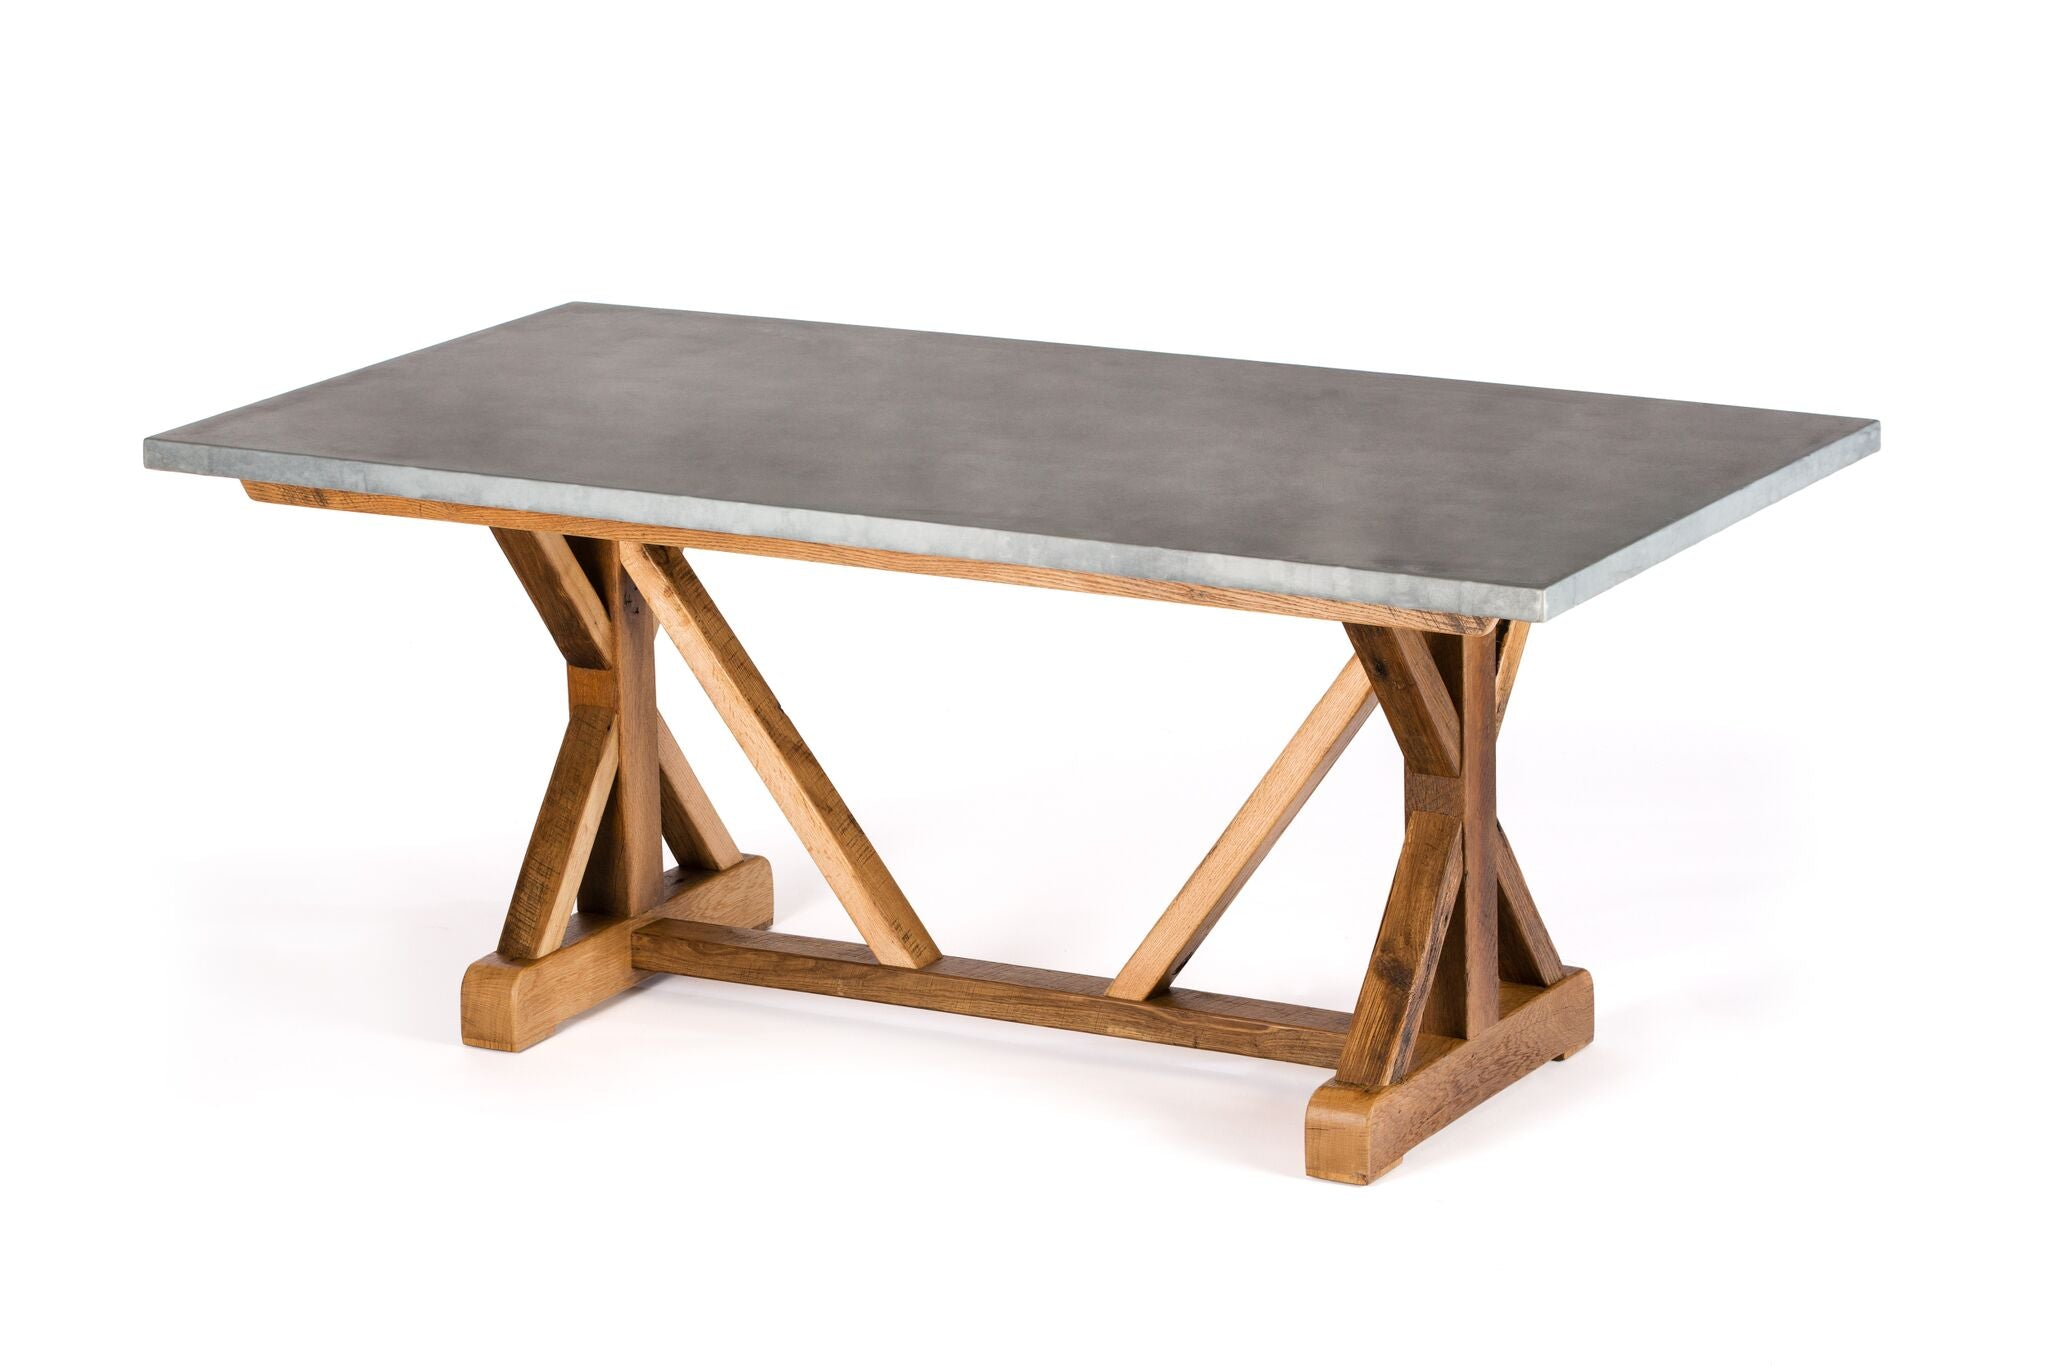 "Zinc Rectangular Table | French Trestle Table | BLACKENED BRONZE | Americana on Reclaimed Oak | 120""L 40""W 30""H 